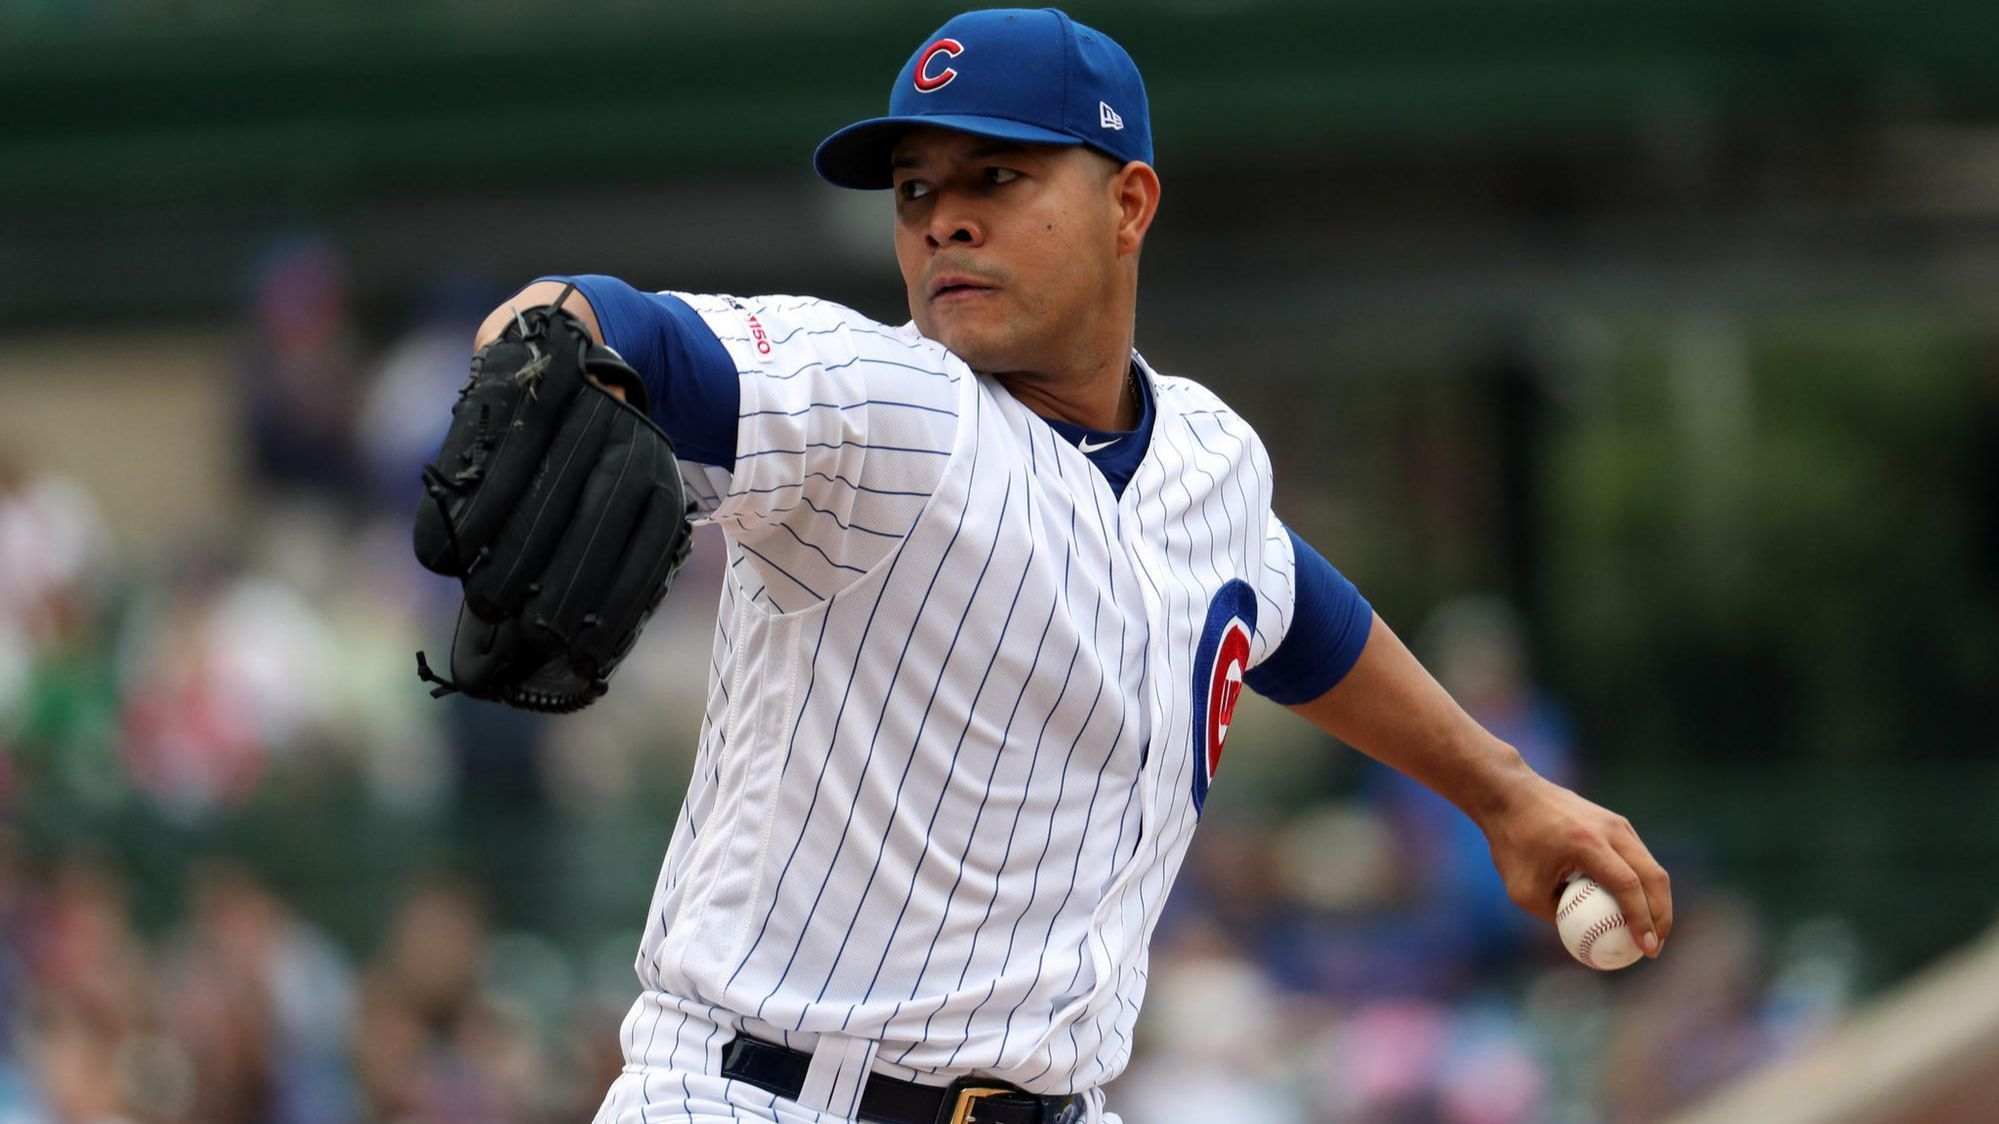 Cubs acknowledge White Sox improvement but need to take care of their own business